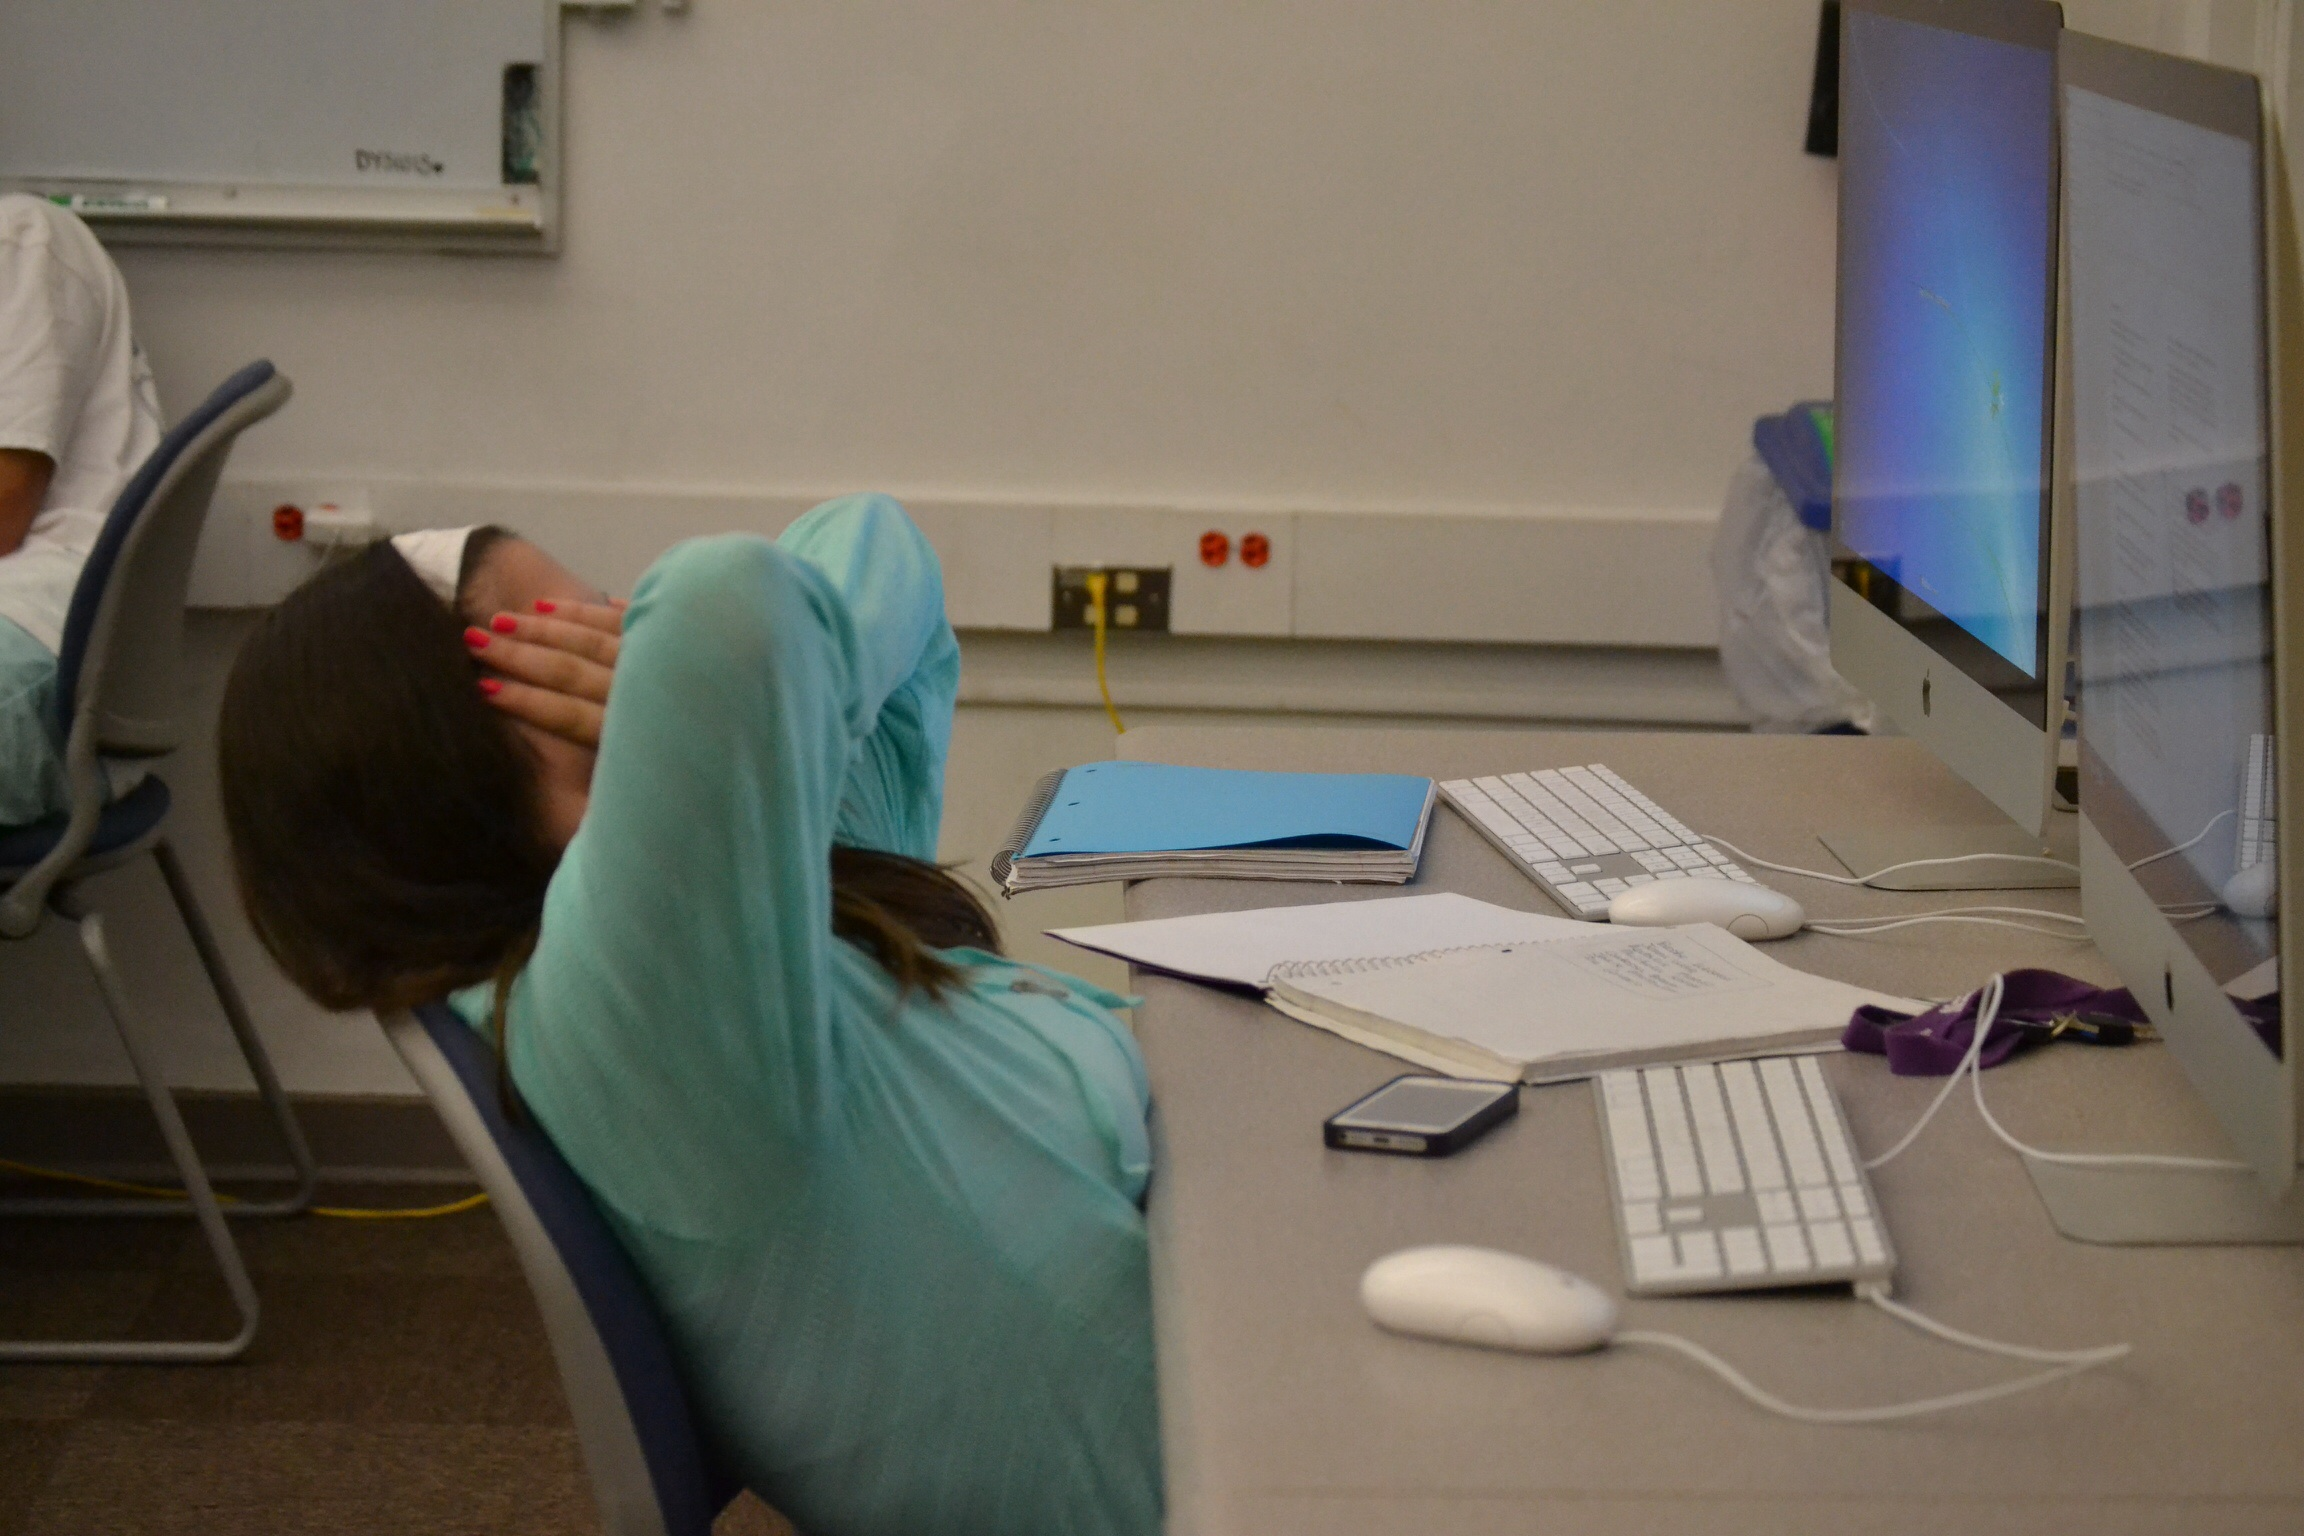 Kaitlyn Kaminski experiences the highs and lows of reporting. Photo courtesy Medill cherubs.